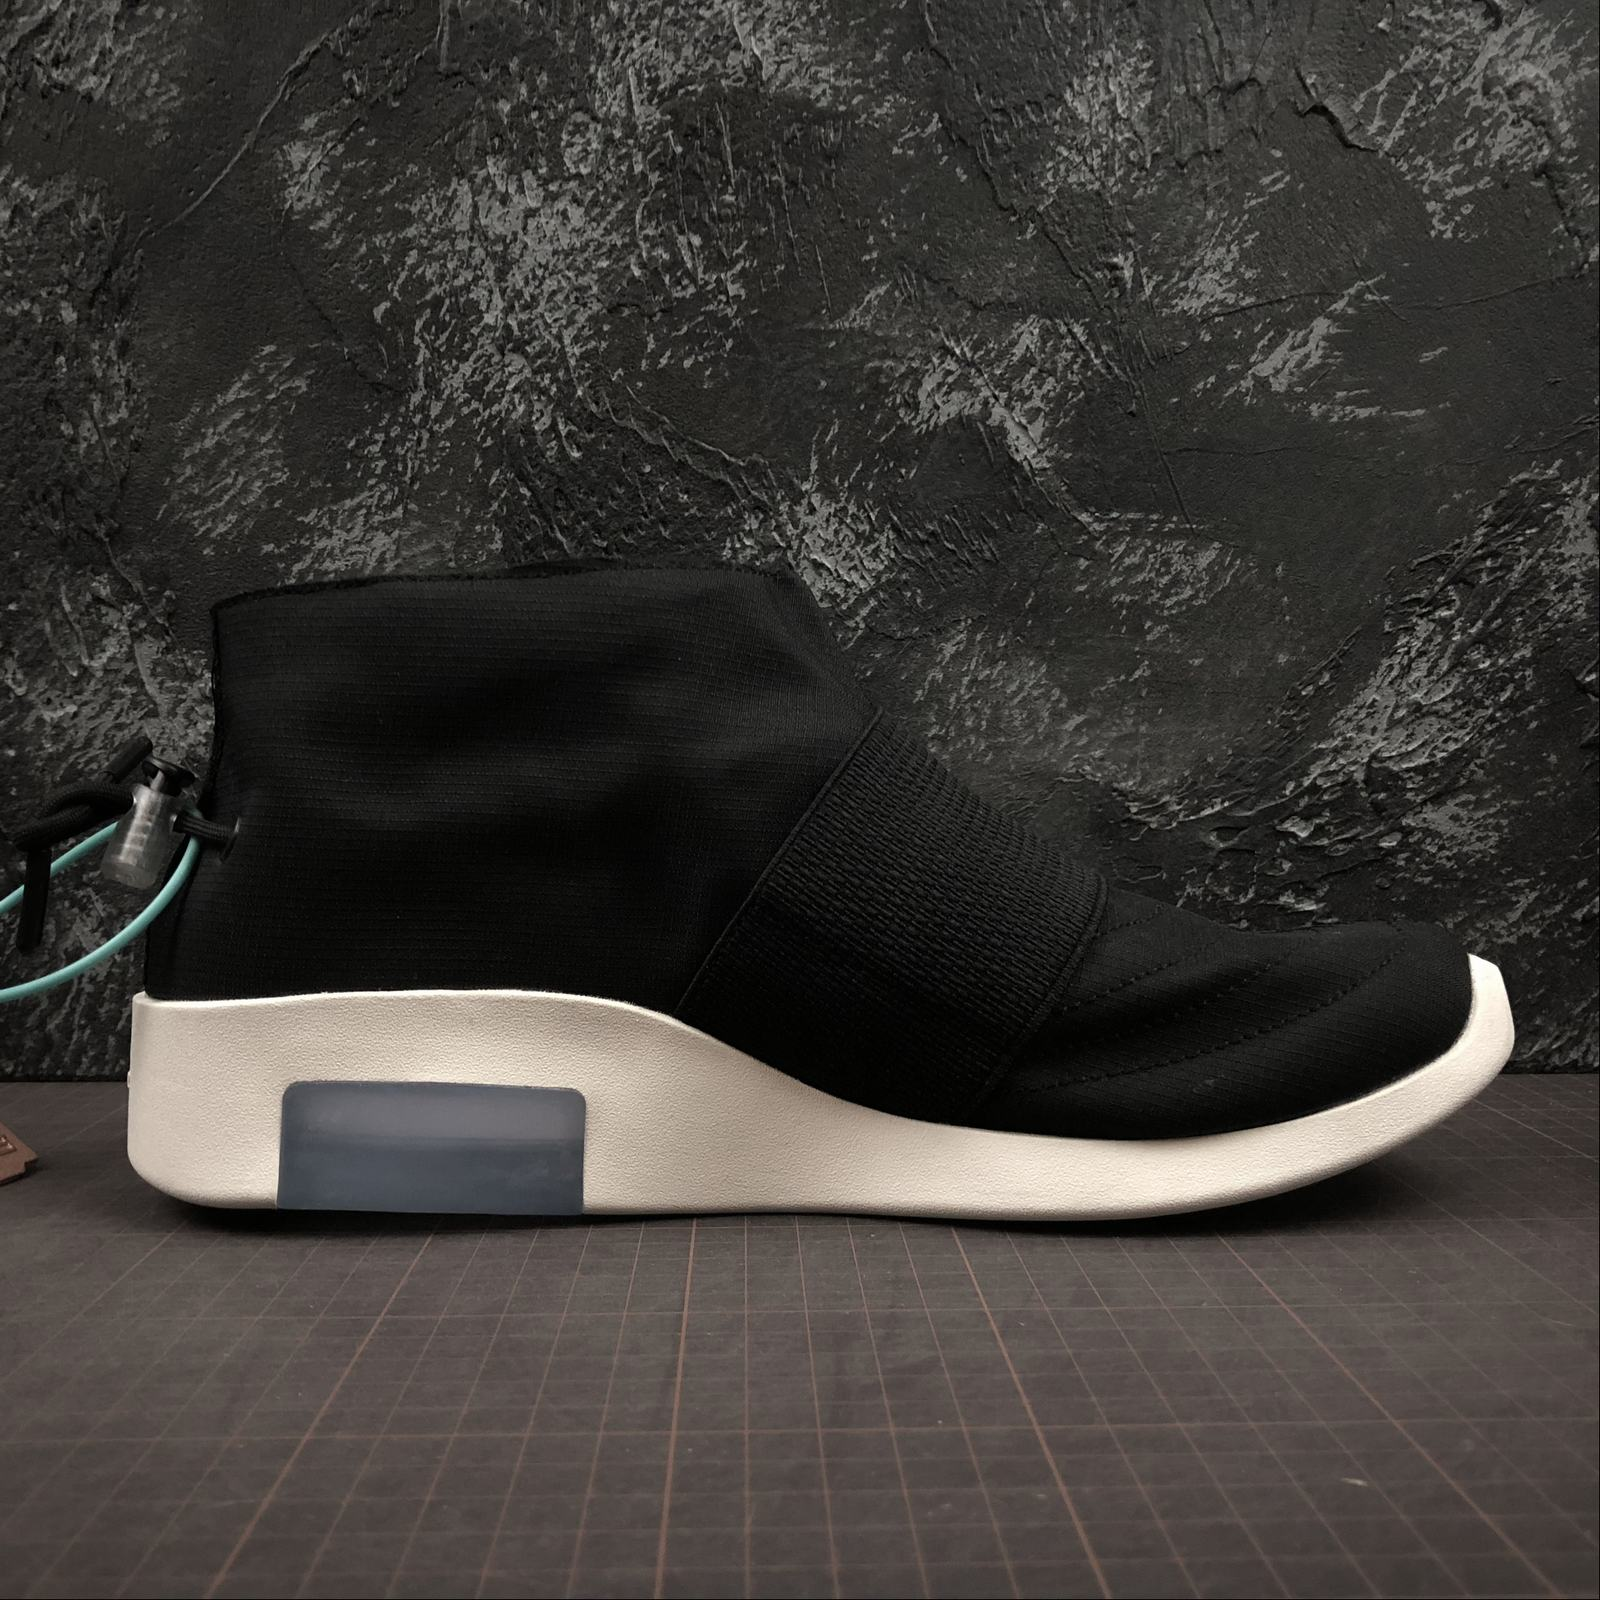 Мужские кроссовки Nike Air Fear Of God Mid Men Black - фото №2